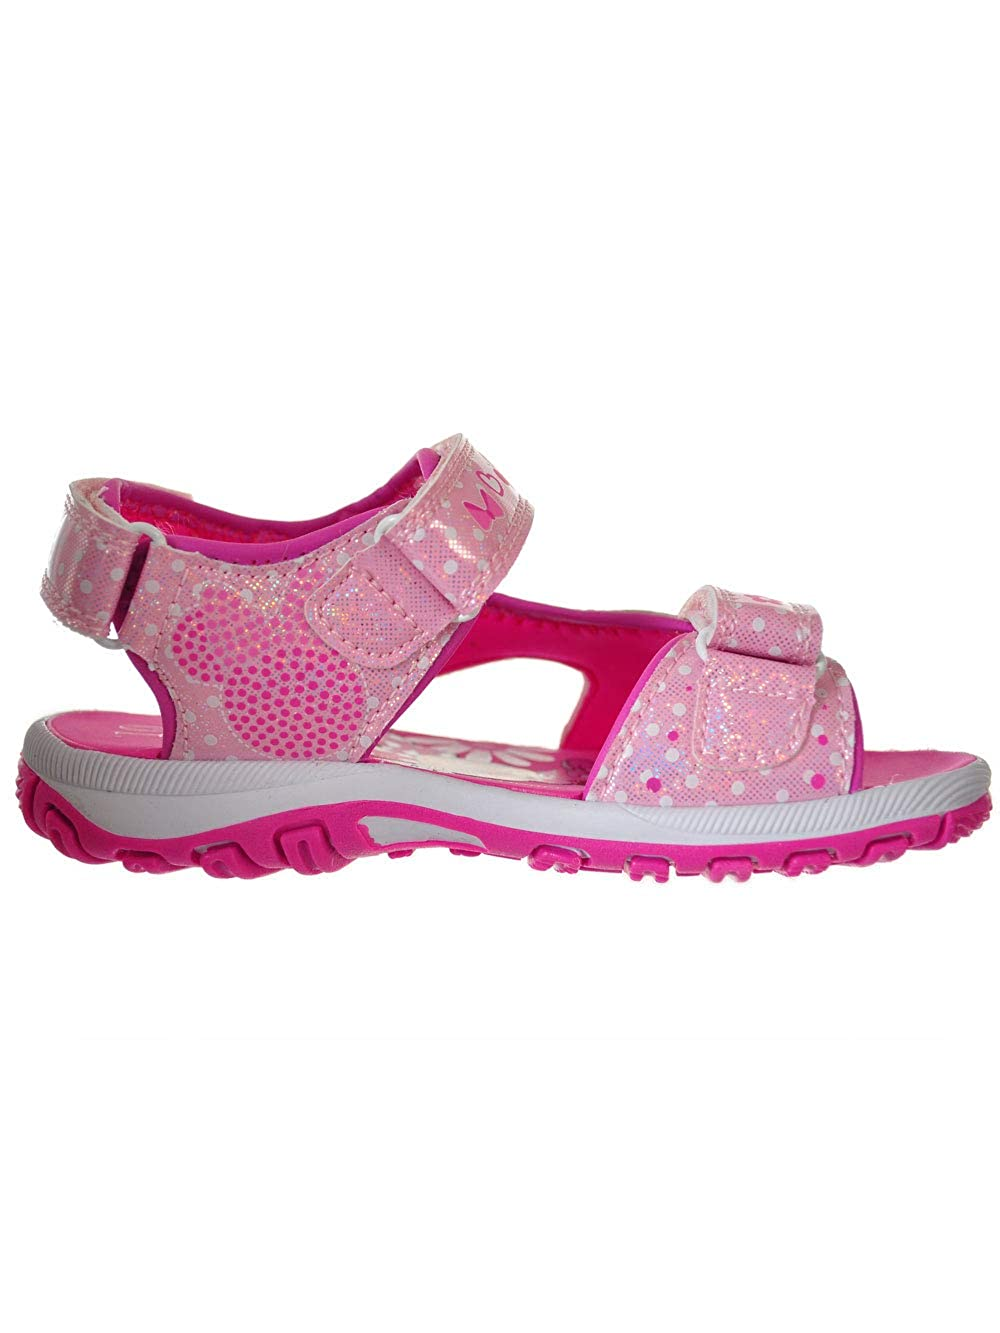 Minnie Mouse Girls Pink Sandal Shoes